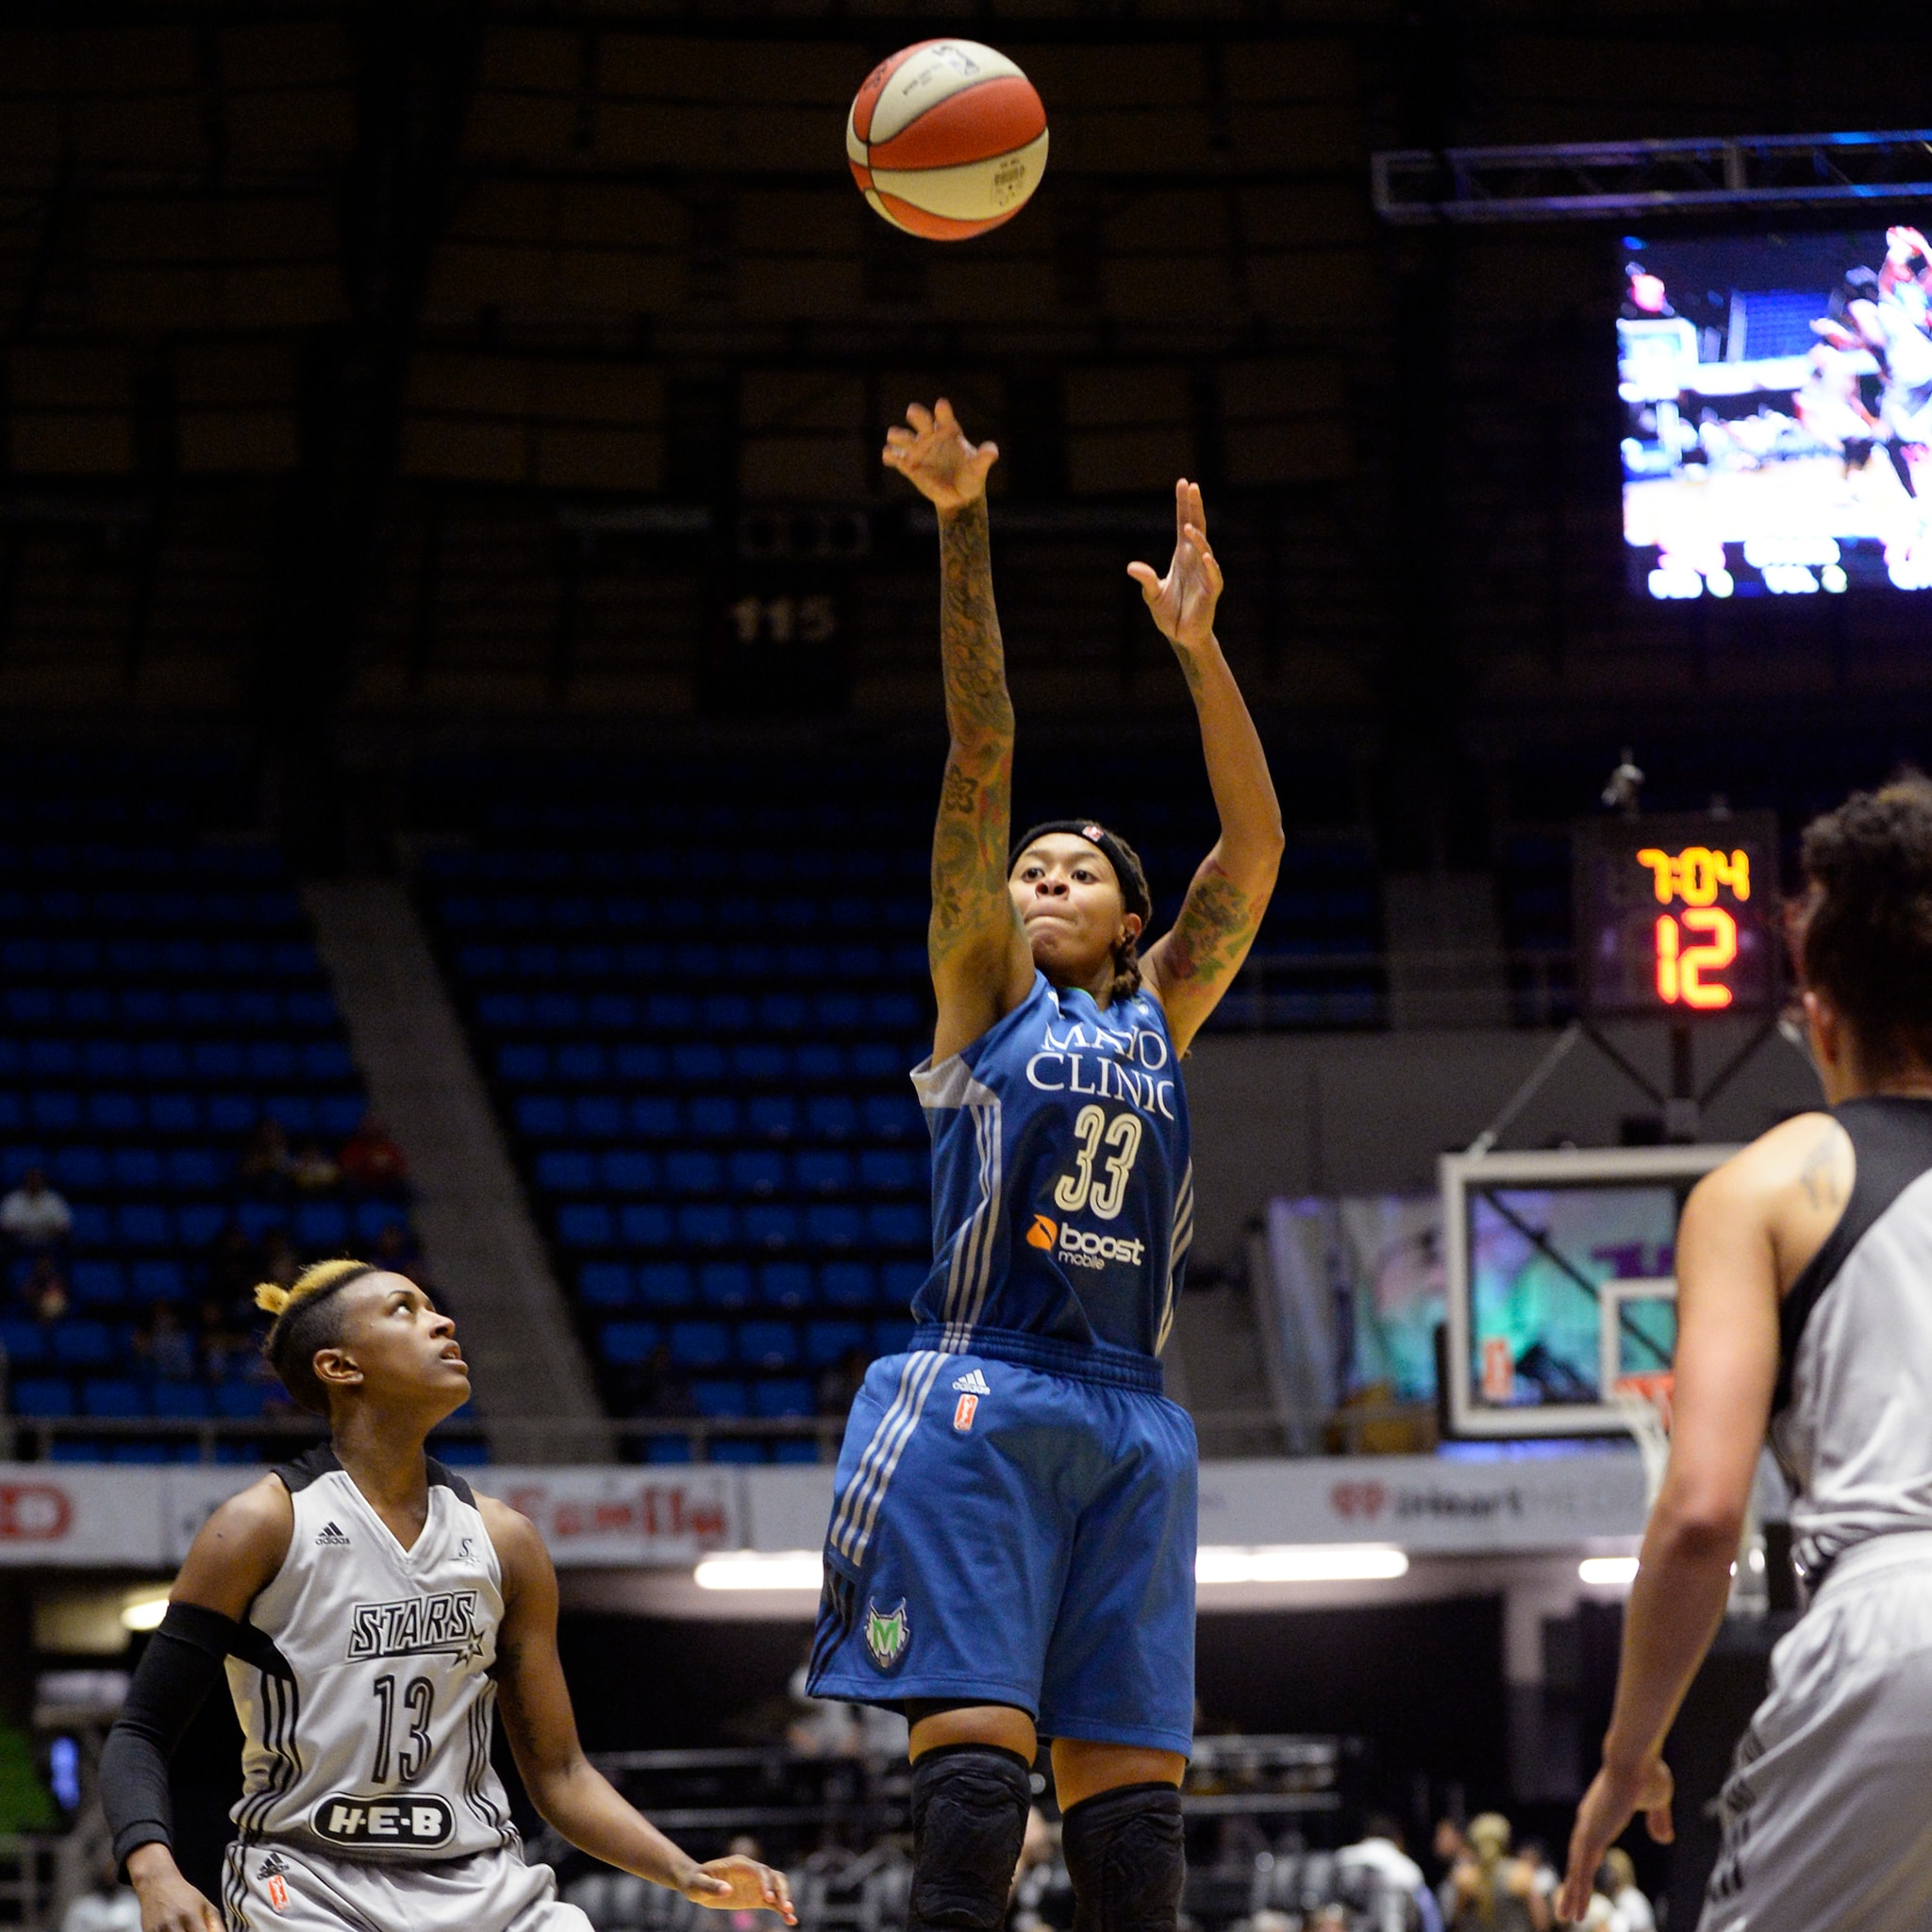 Lynx guard Seimone Augustus led the Lynx scoring a game-high 18 points while adding two rebounds and four assists.